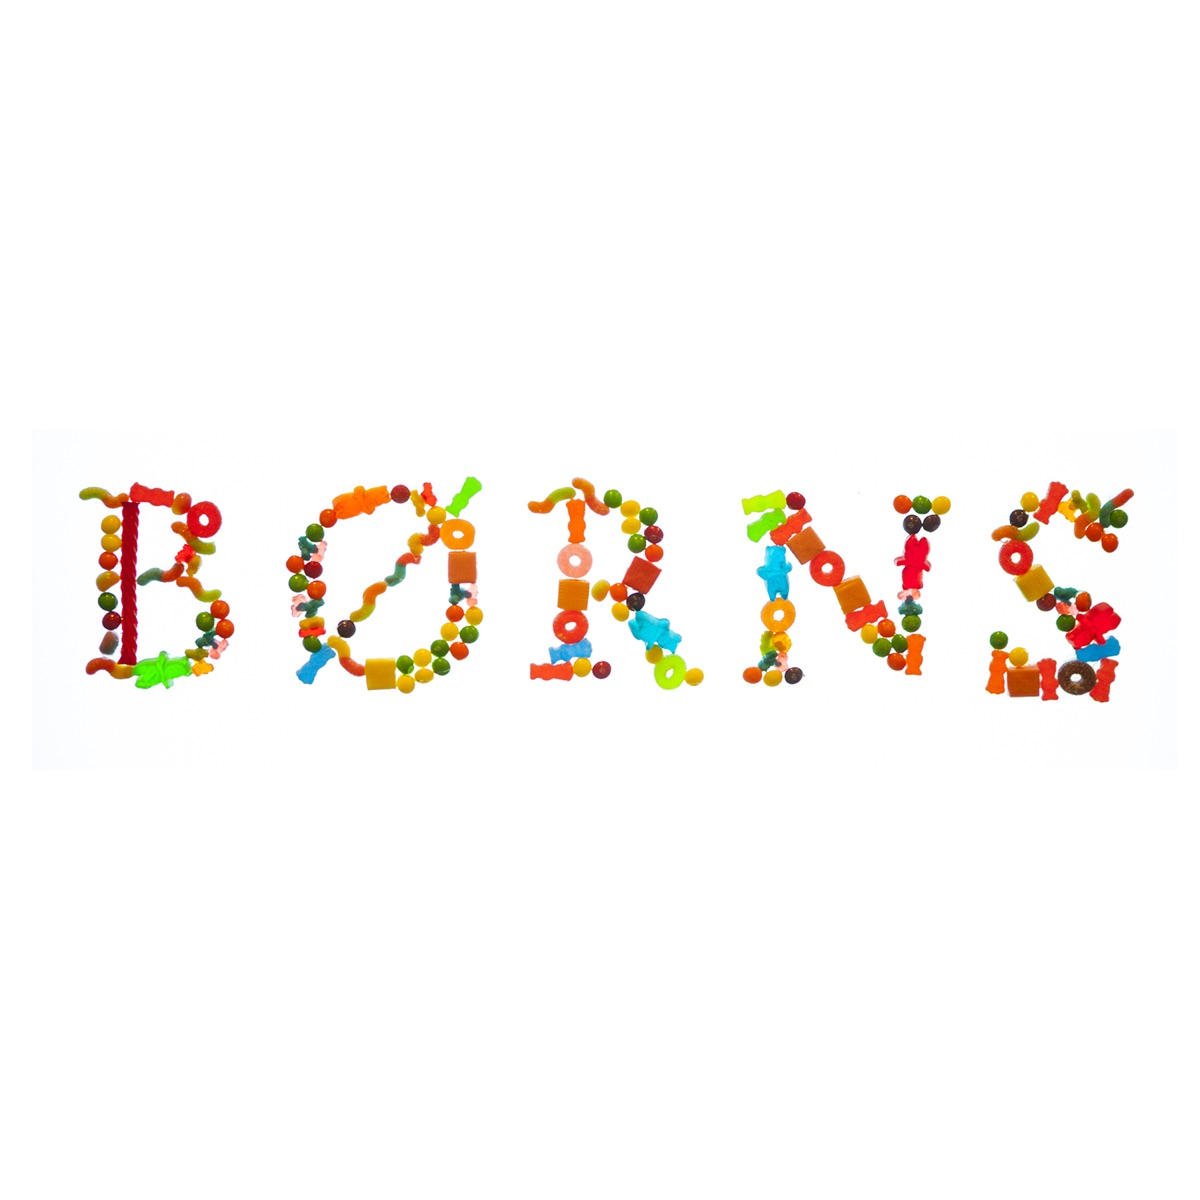 Seeing Stars - Single BØRNS CD cover